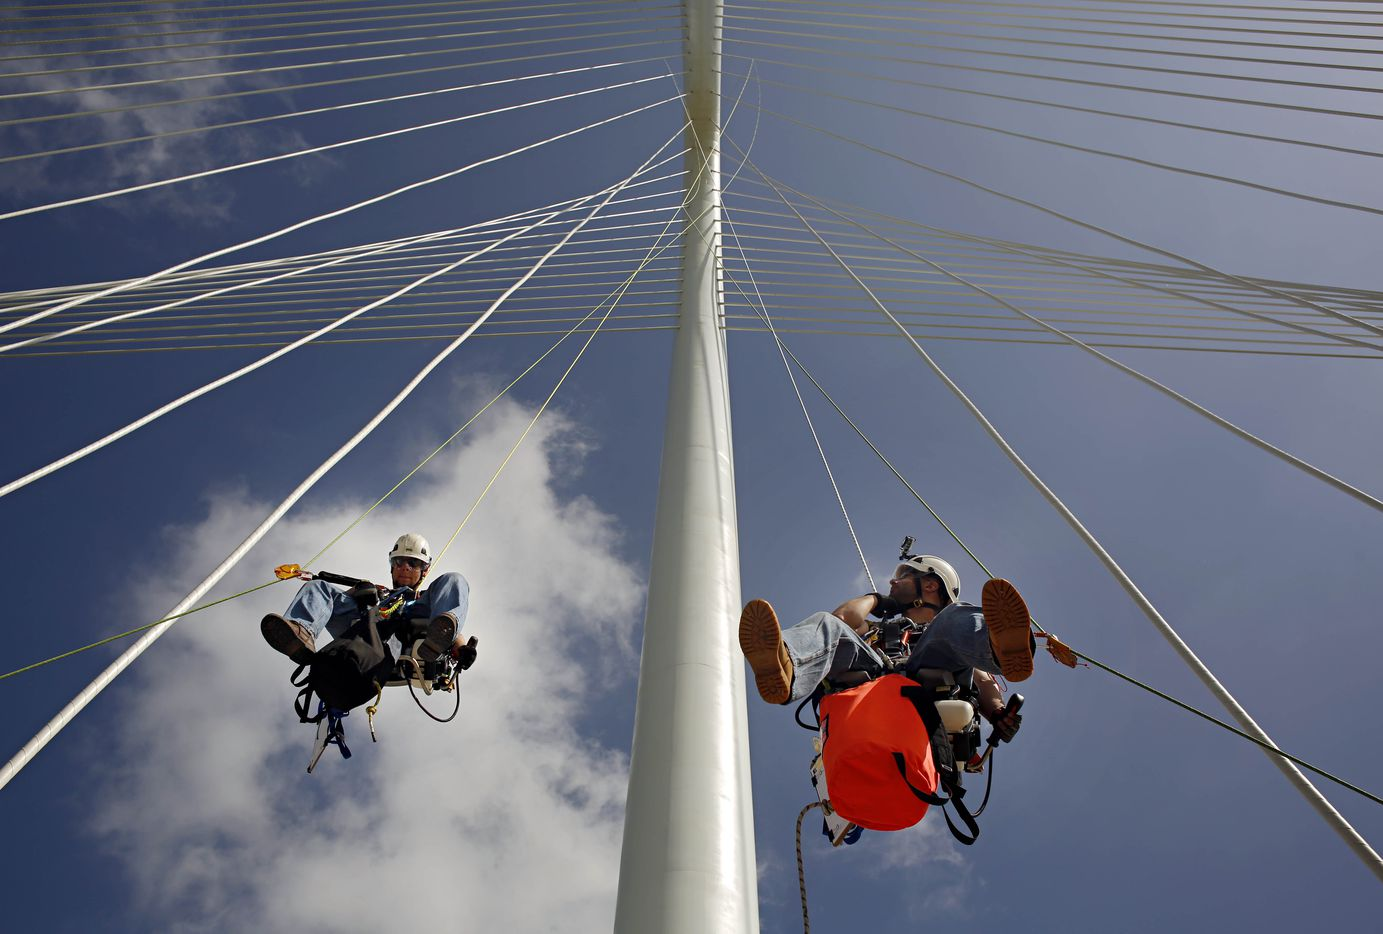 Doug Dickson (left) and Don Cartwright of TranSystems are suspended from ropes as they prepare to inspect the Margaret Hunt Hill Bridge June 12, 2013 in Dallas. The Cleveland, Ohio-based team began work on Monday to inspect the 14-month-old bridge for signs of stress as part of regular maintenance. (G.J. McCarthy/The Dallas Morning News)